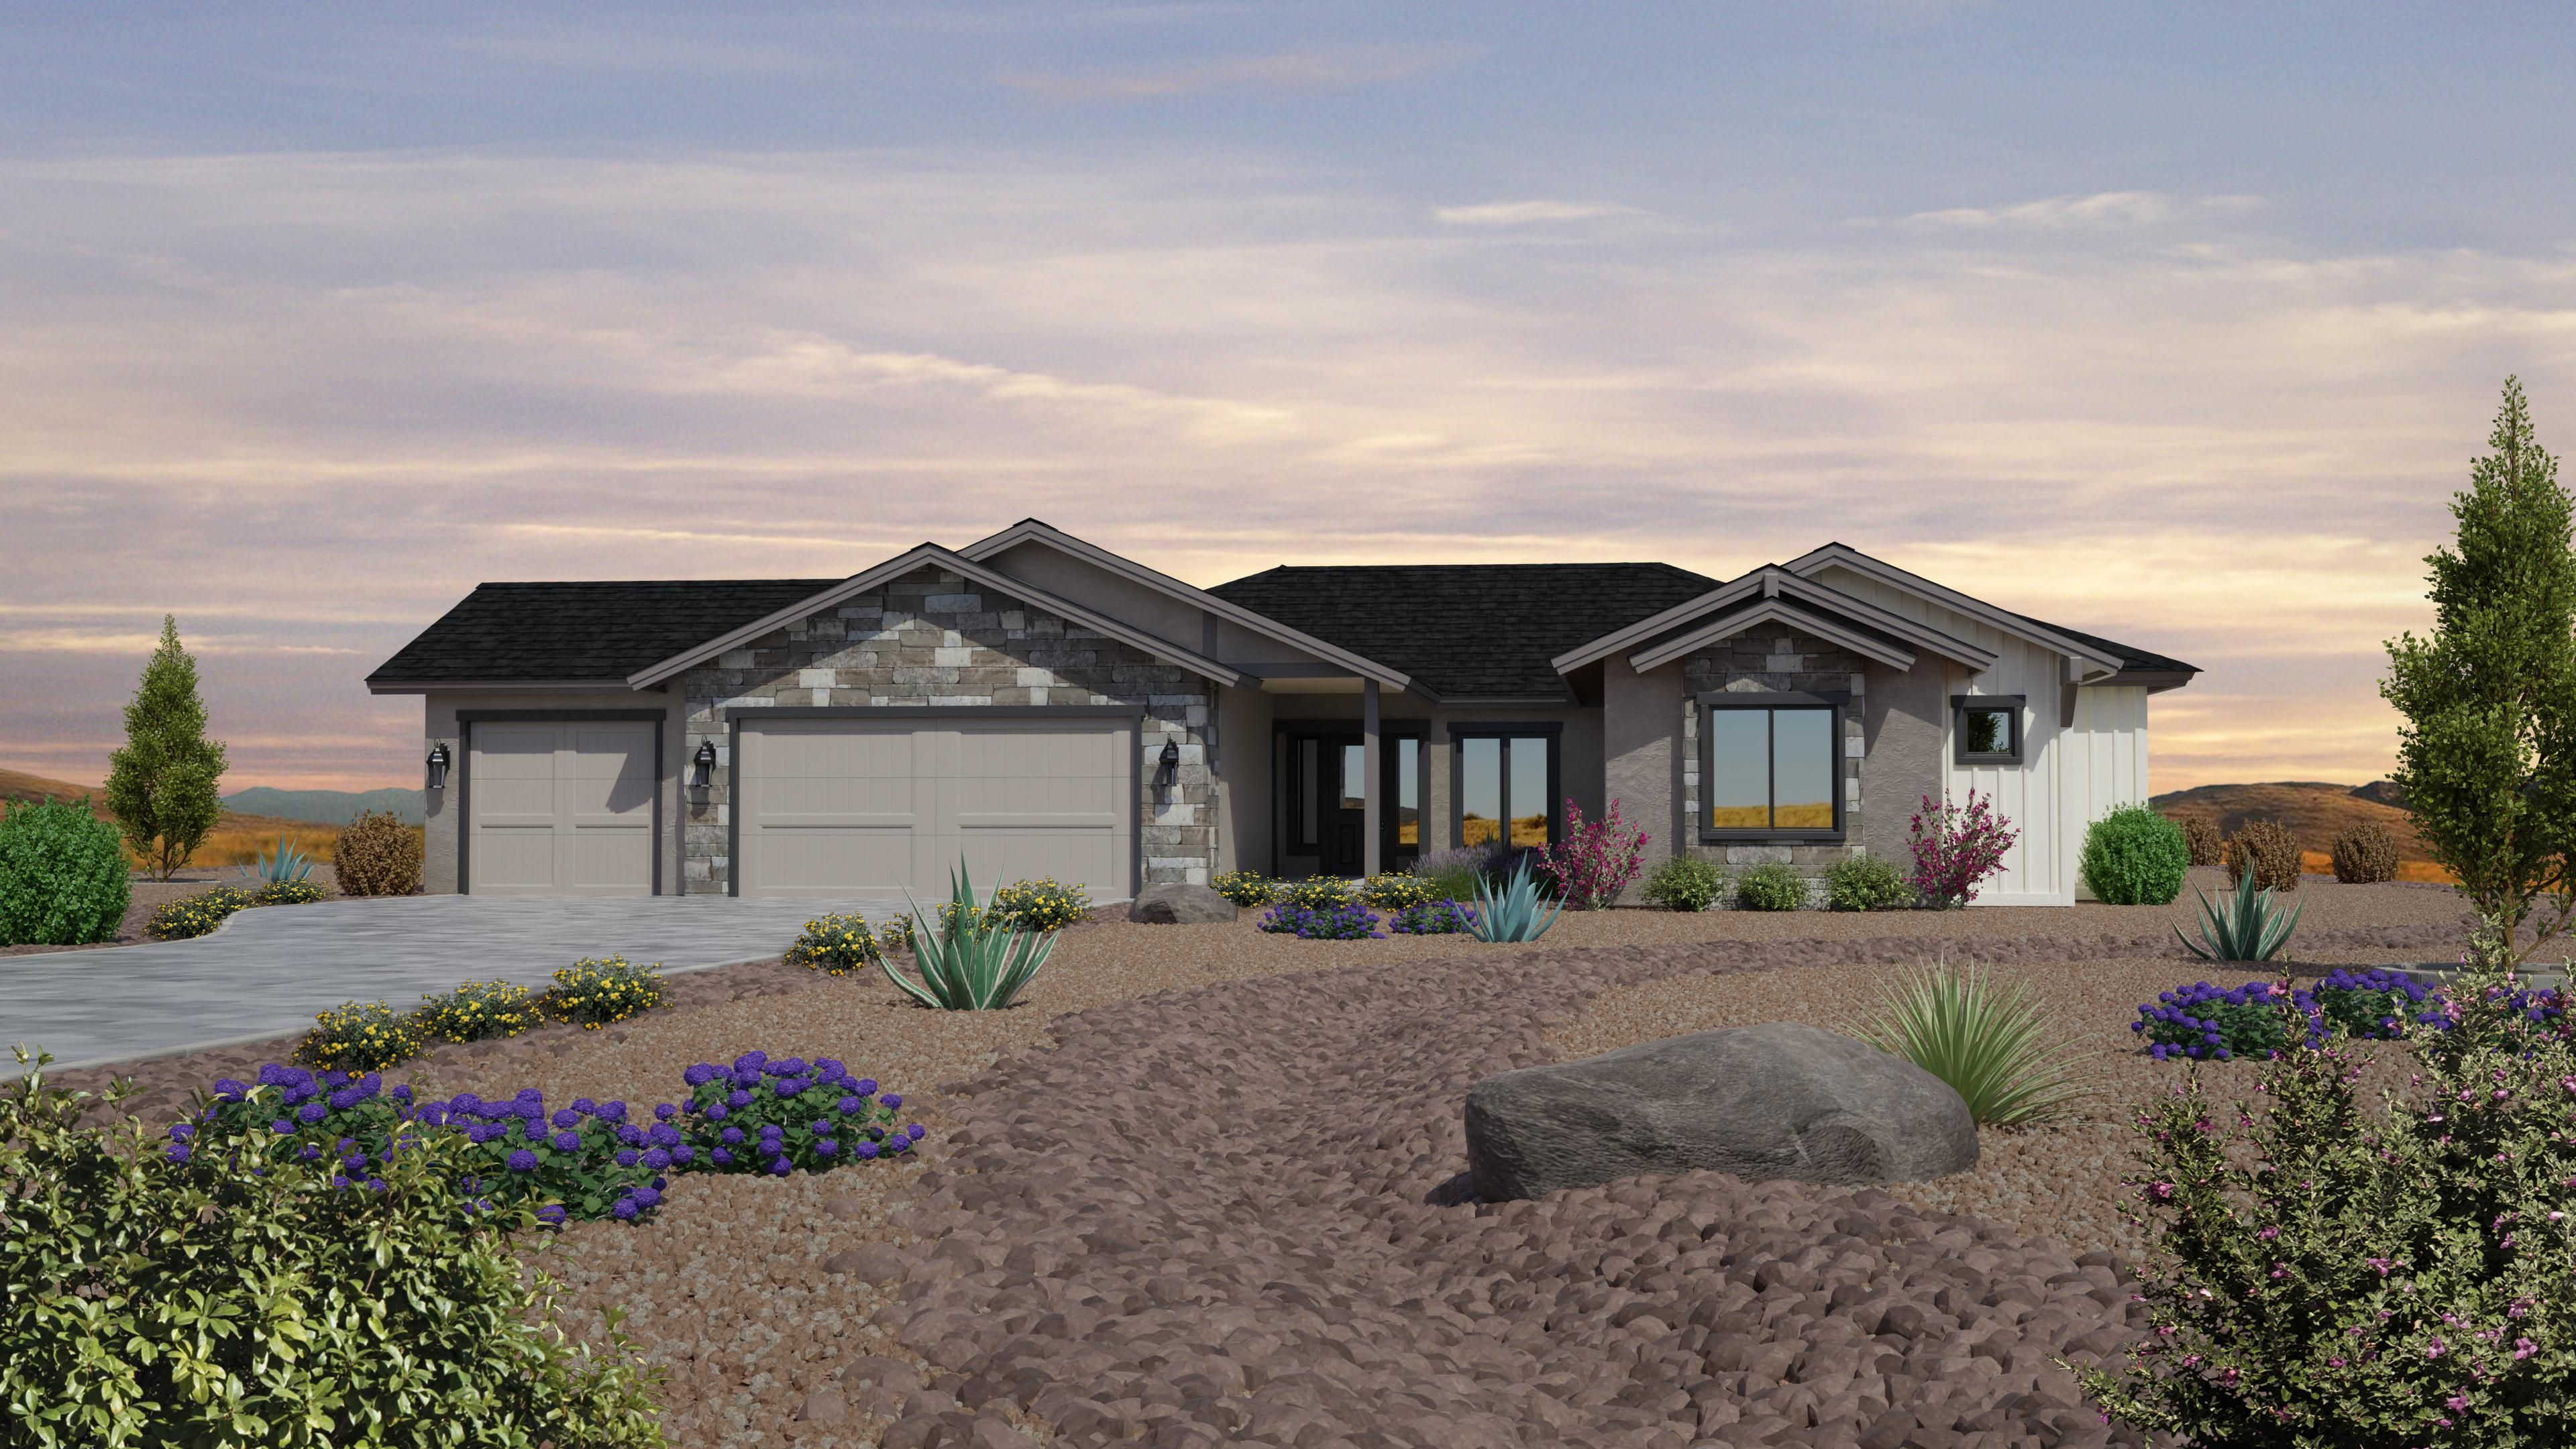 Exterior featured in the Jasper Featured Plan 2672 By Capstone Homes in Prescott, AZ